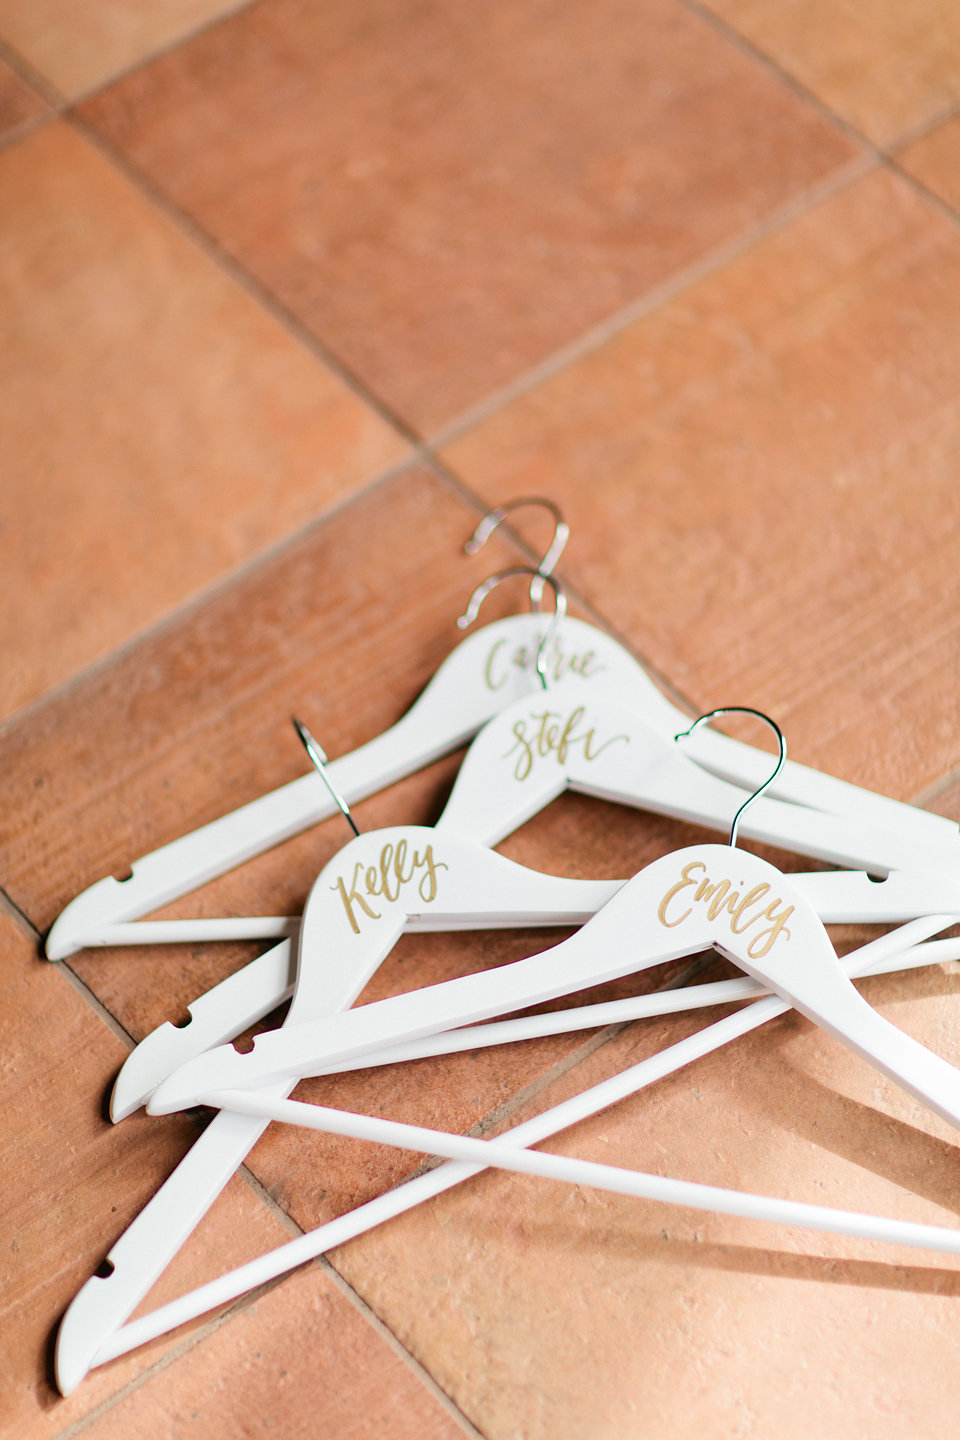 Gold & Cream Personalized Bridal Party Hangers  Blush Wedding at TPC Sawgrass Wedding Ponte Vedra Beach  Jacksonville Wedding Planner Blue Ribbon Weddings  Jacksonville Wedding Photographer Debra Eby Photography  Wedding Ceremony & Reception at TPC Sawgrass Jacksonville